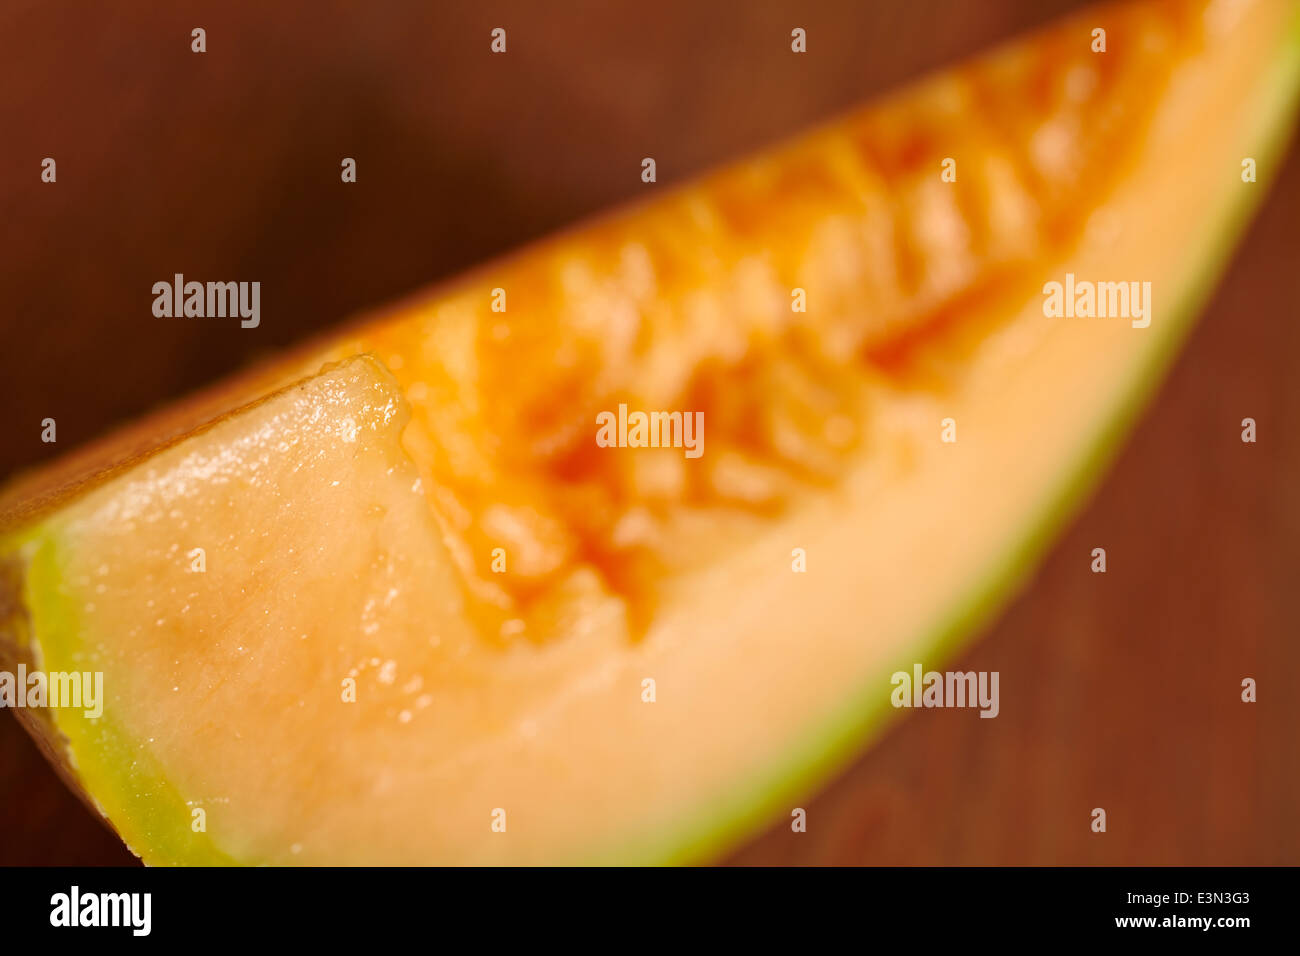 Tranche de melon Photo Stock